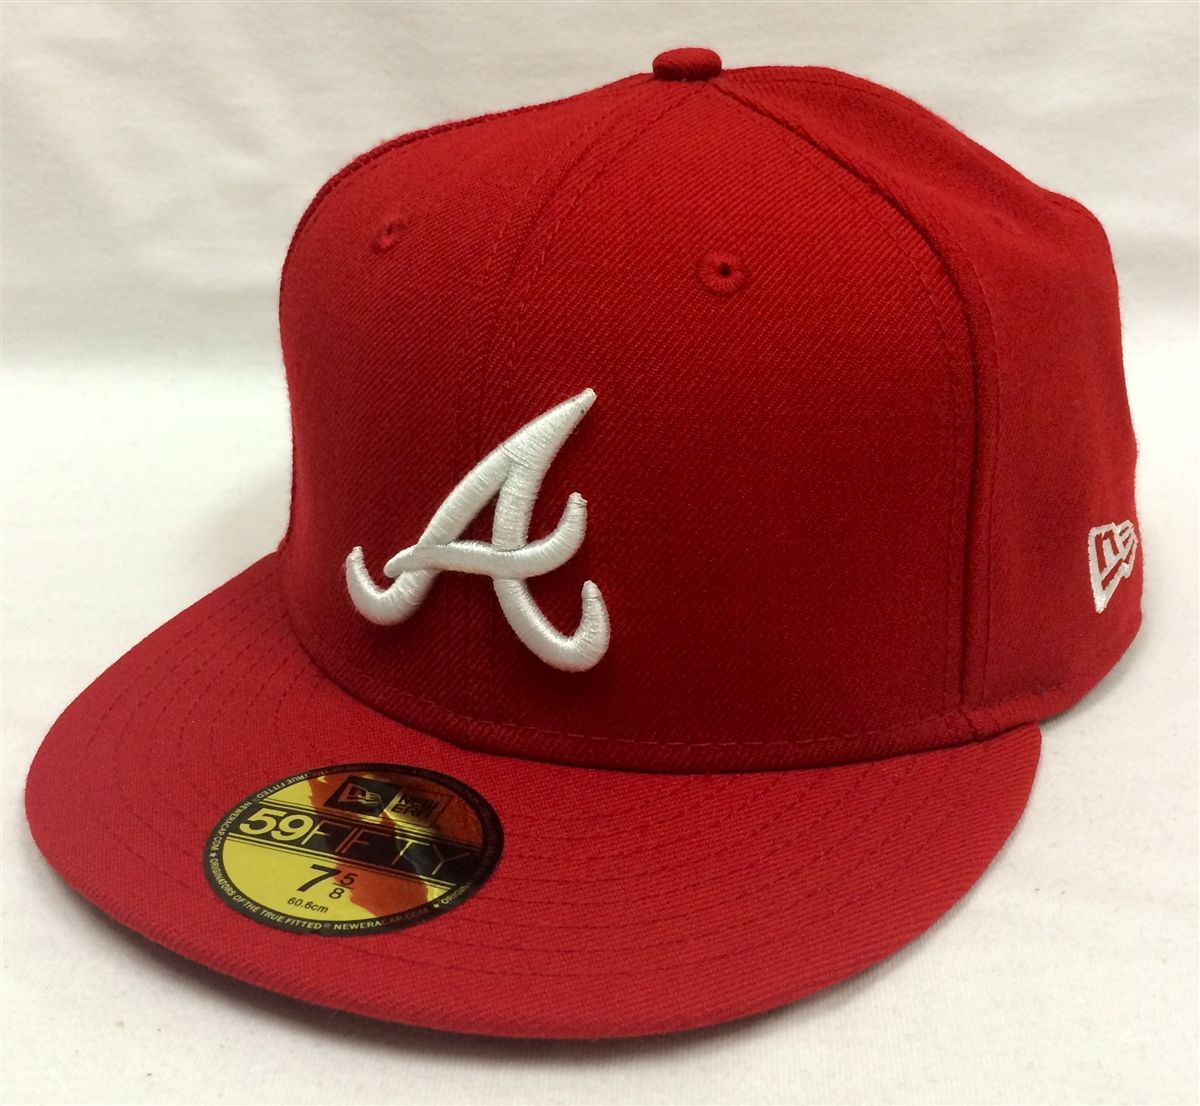 New Era 59fifty Mlb Basic Atlanta Braves Red Fitted Cap New Era 59fifty Atlanta Braves New Era